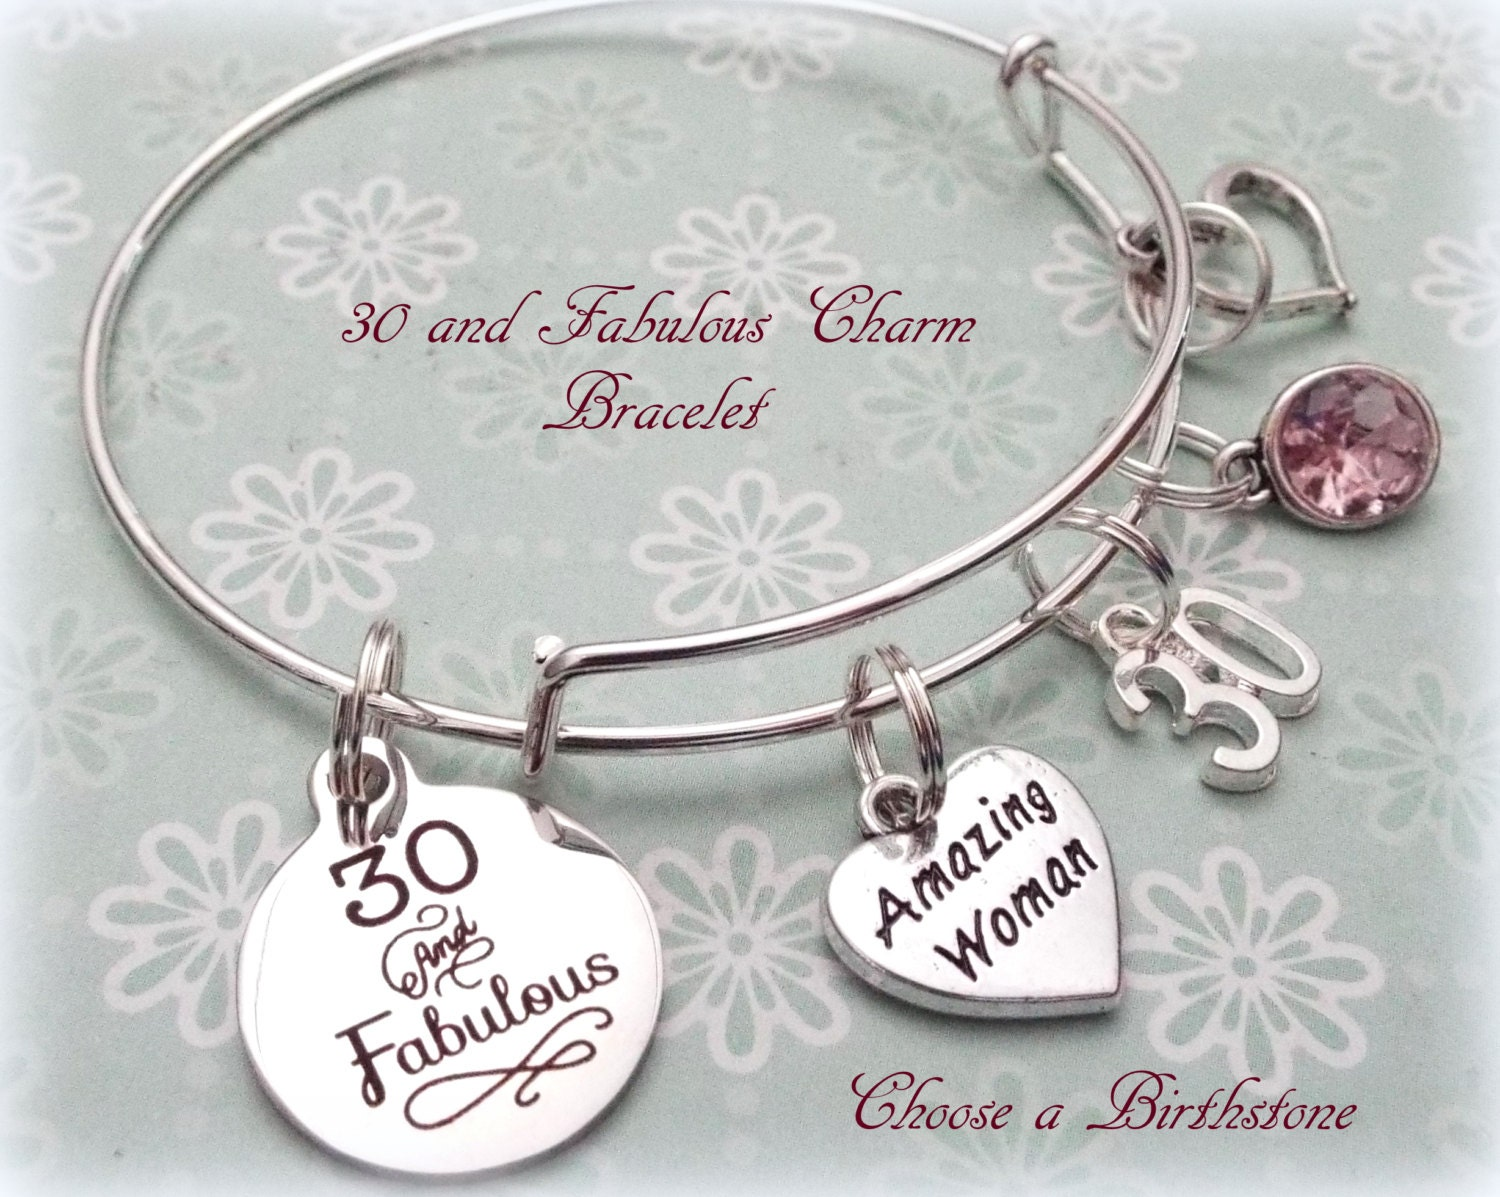 30th birthday gift 30 and fabulous charm bracelet birthday gift 30th birthday gift 30 and fabulous charm bracelet birthday gift for girlfriend best friend gift friend birthday gift gift for friend negle Choice Image